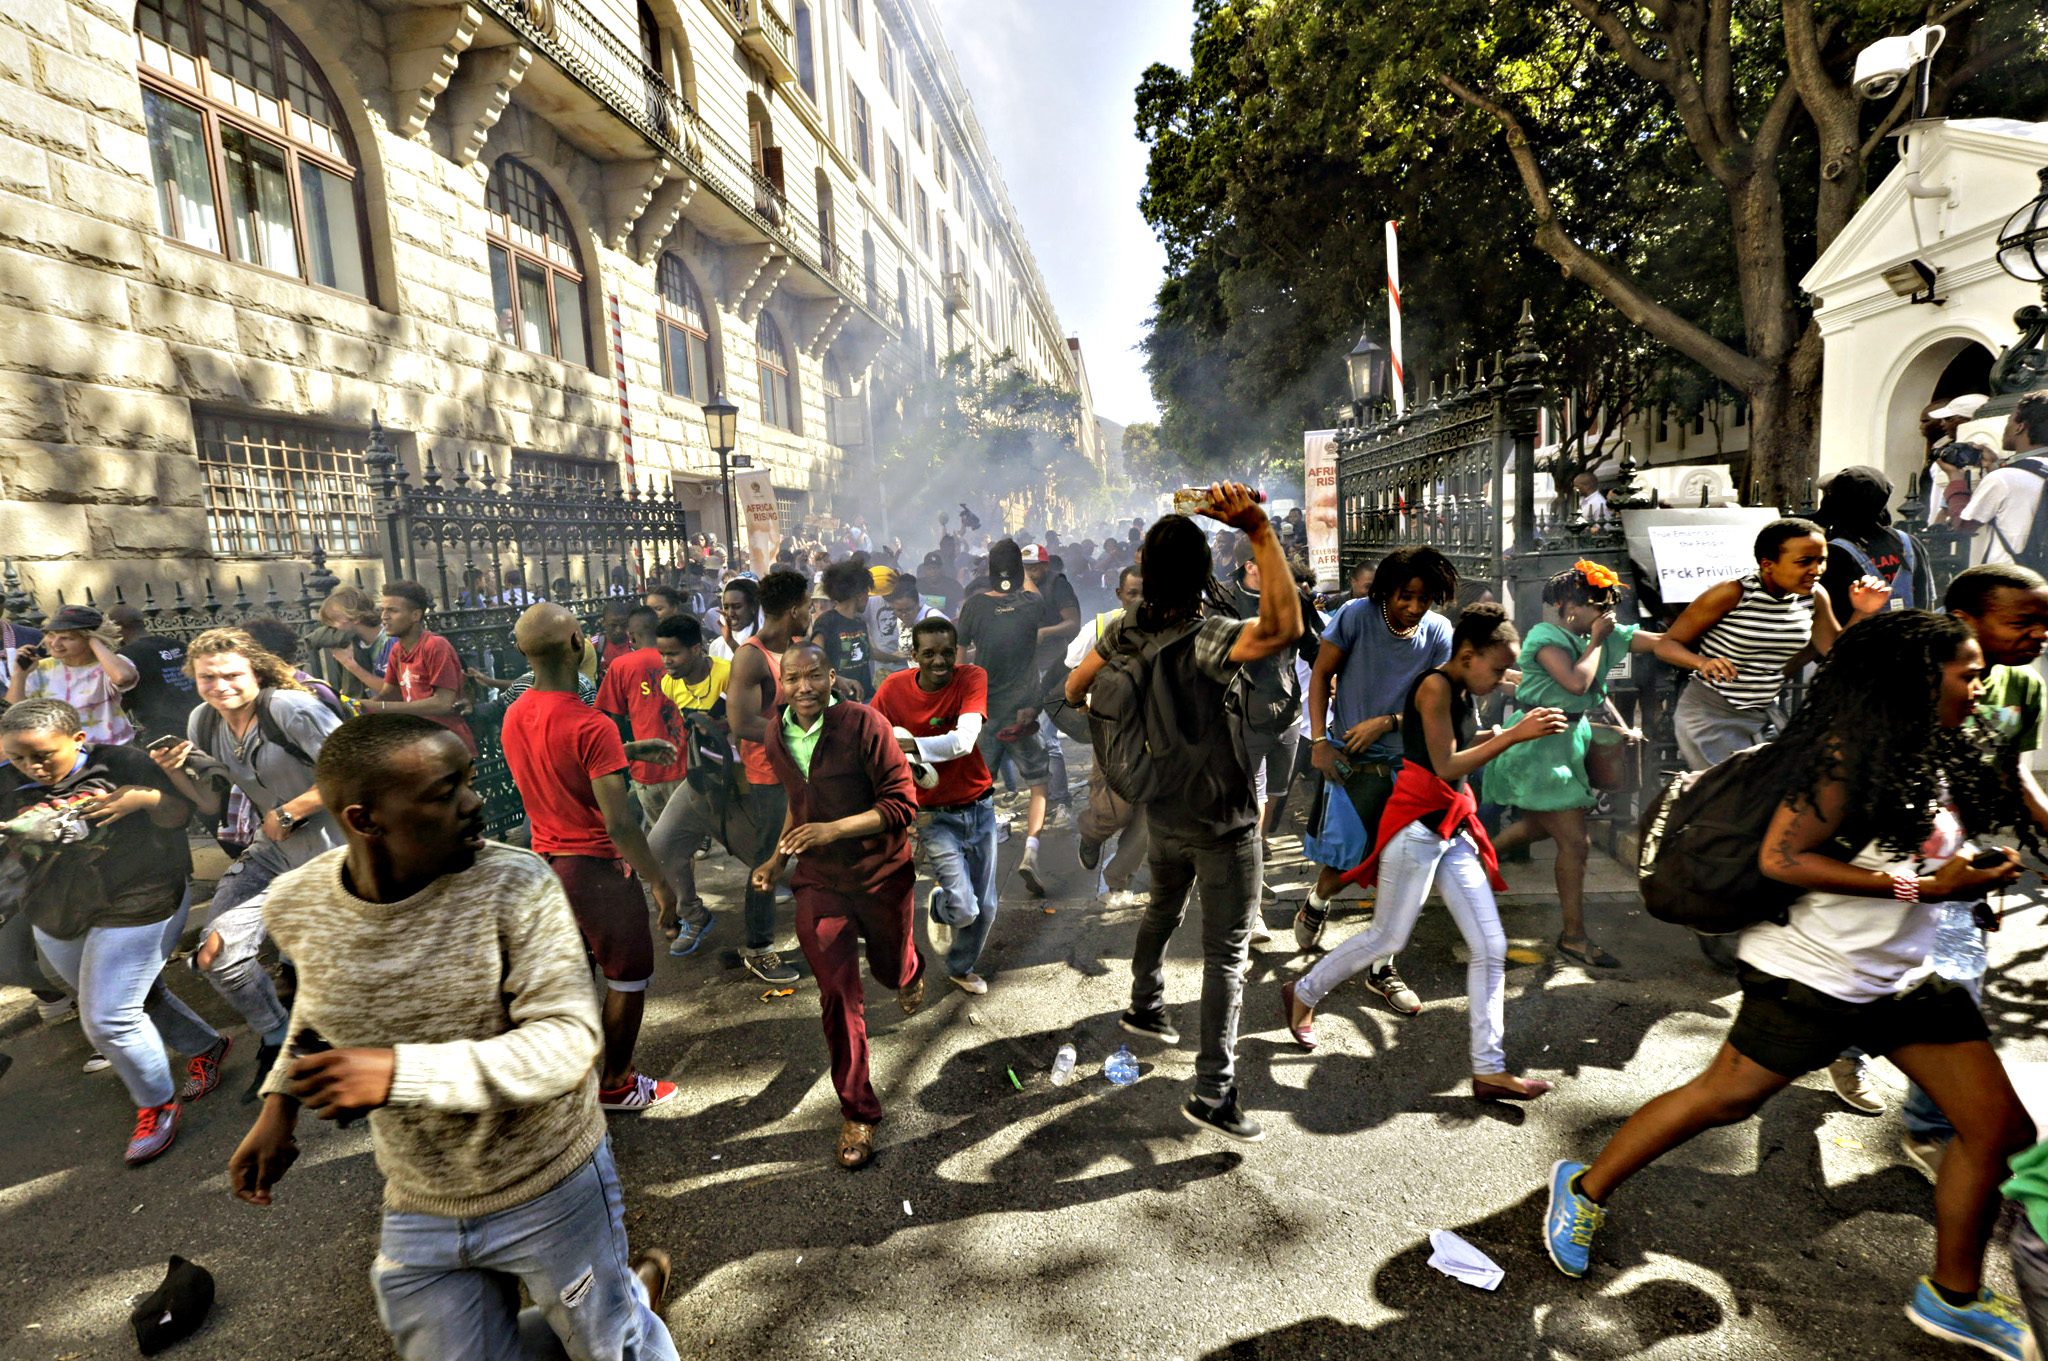 Protesting university students flee as police fire stun grenades outside Parliament in Cape Town, South Africa, Wednesday Oct. 21, 2015. The protests are part of a wave of nationwide protests that have shut down many South Africa universities, which say they are struggling with higher operational costs as well as inadequate state subsidies.